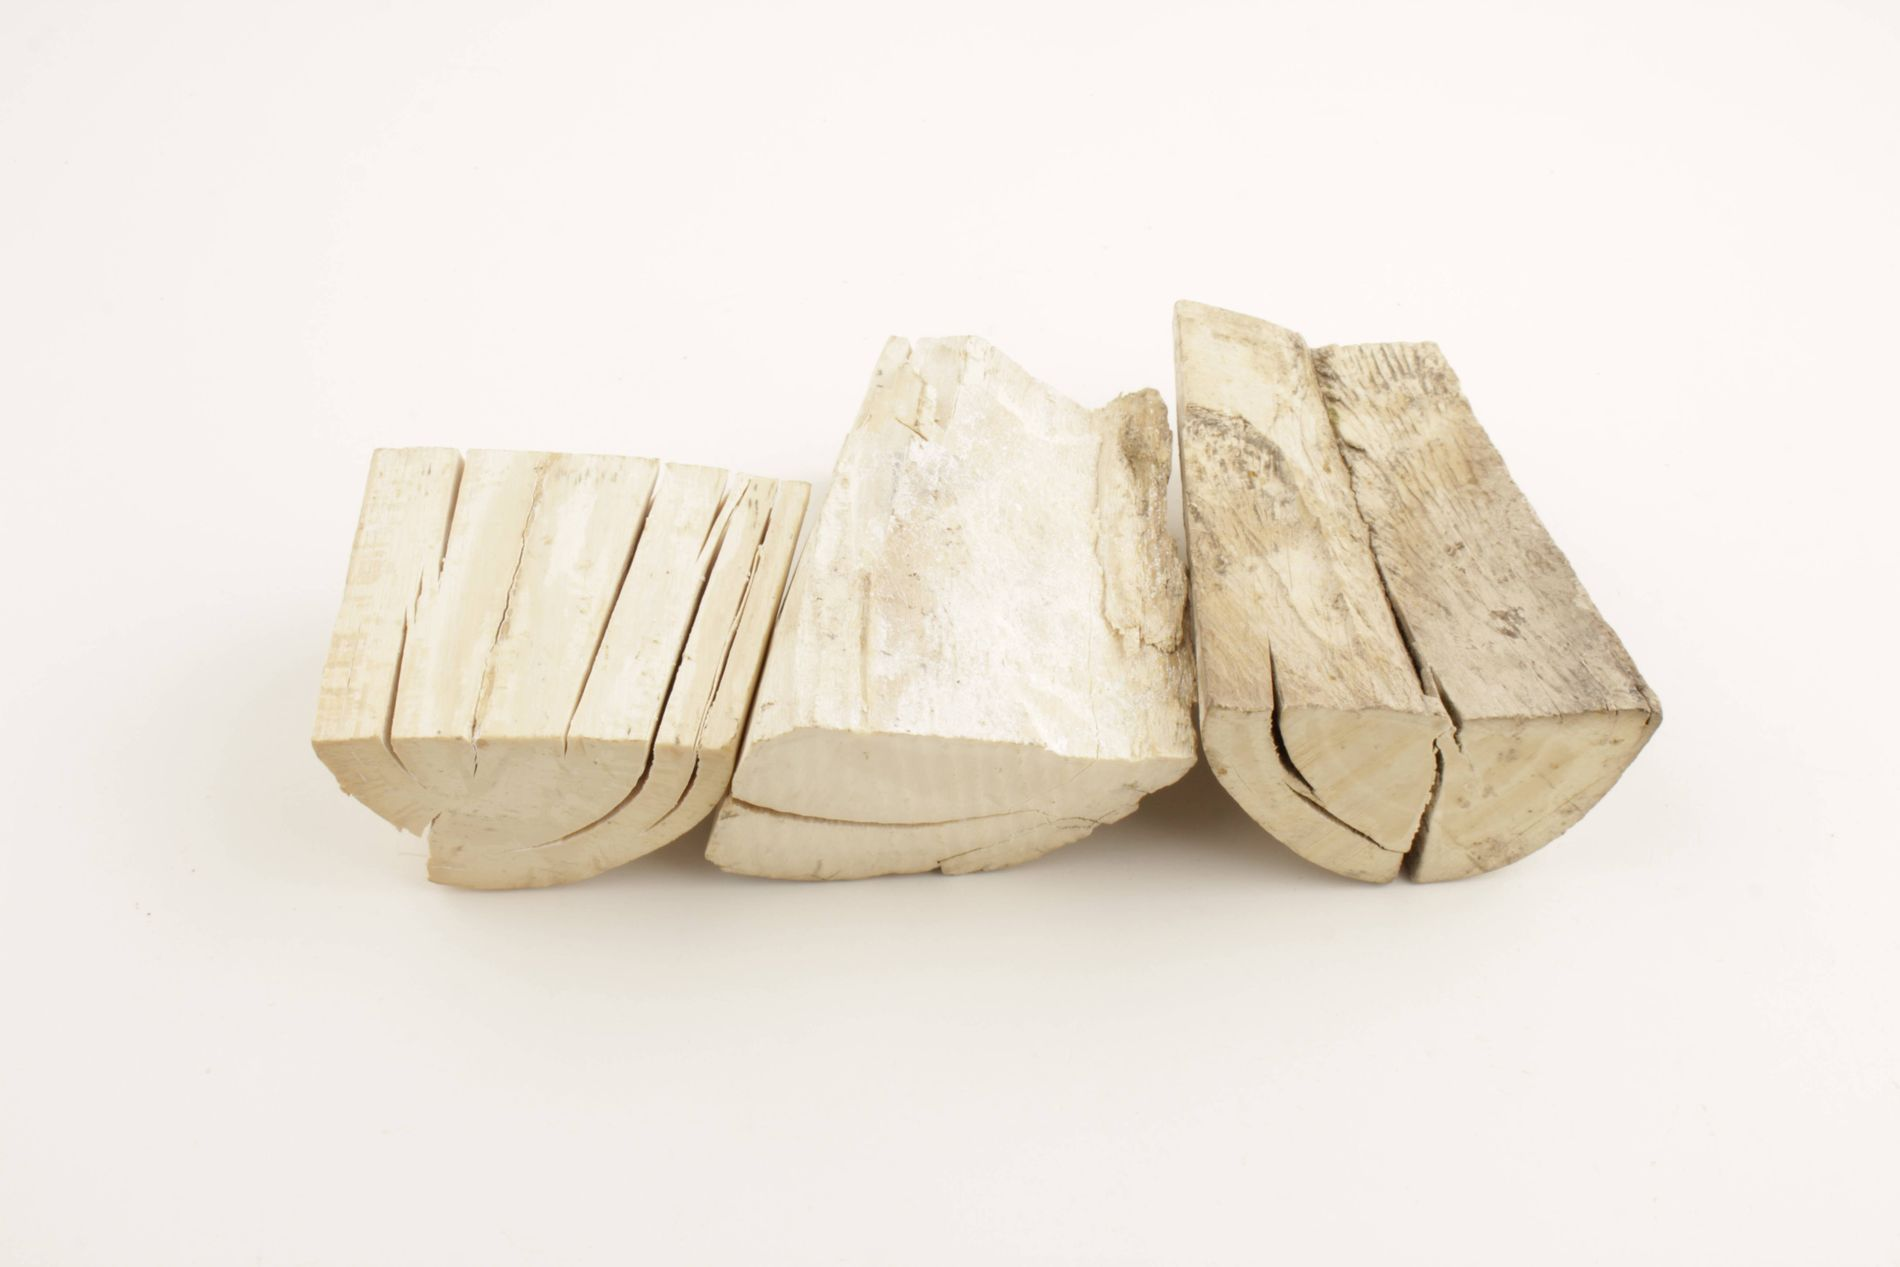 Raw mammoth ivory offcuts